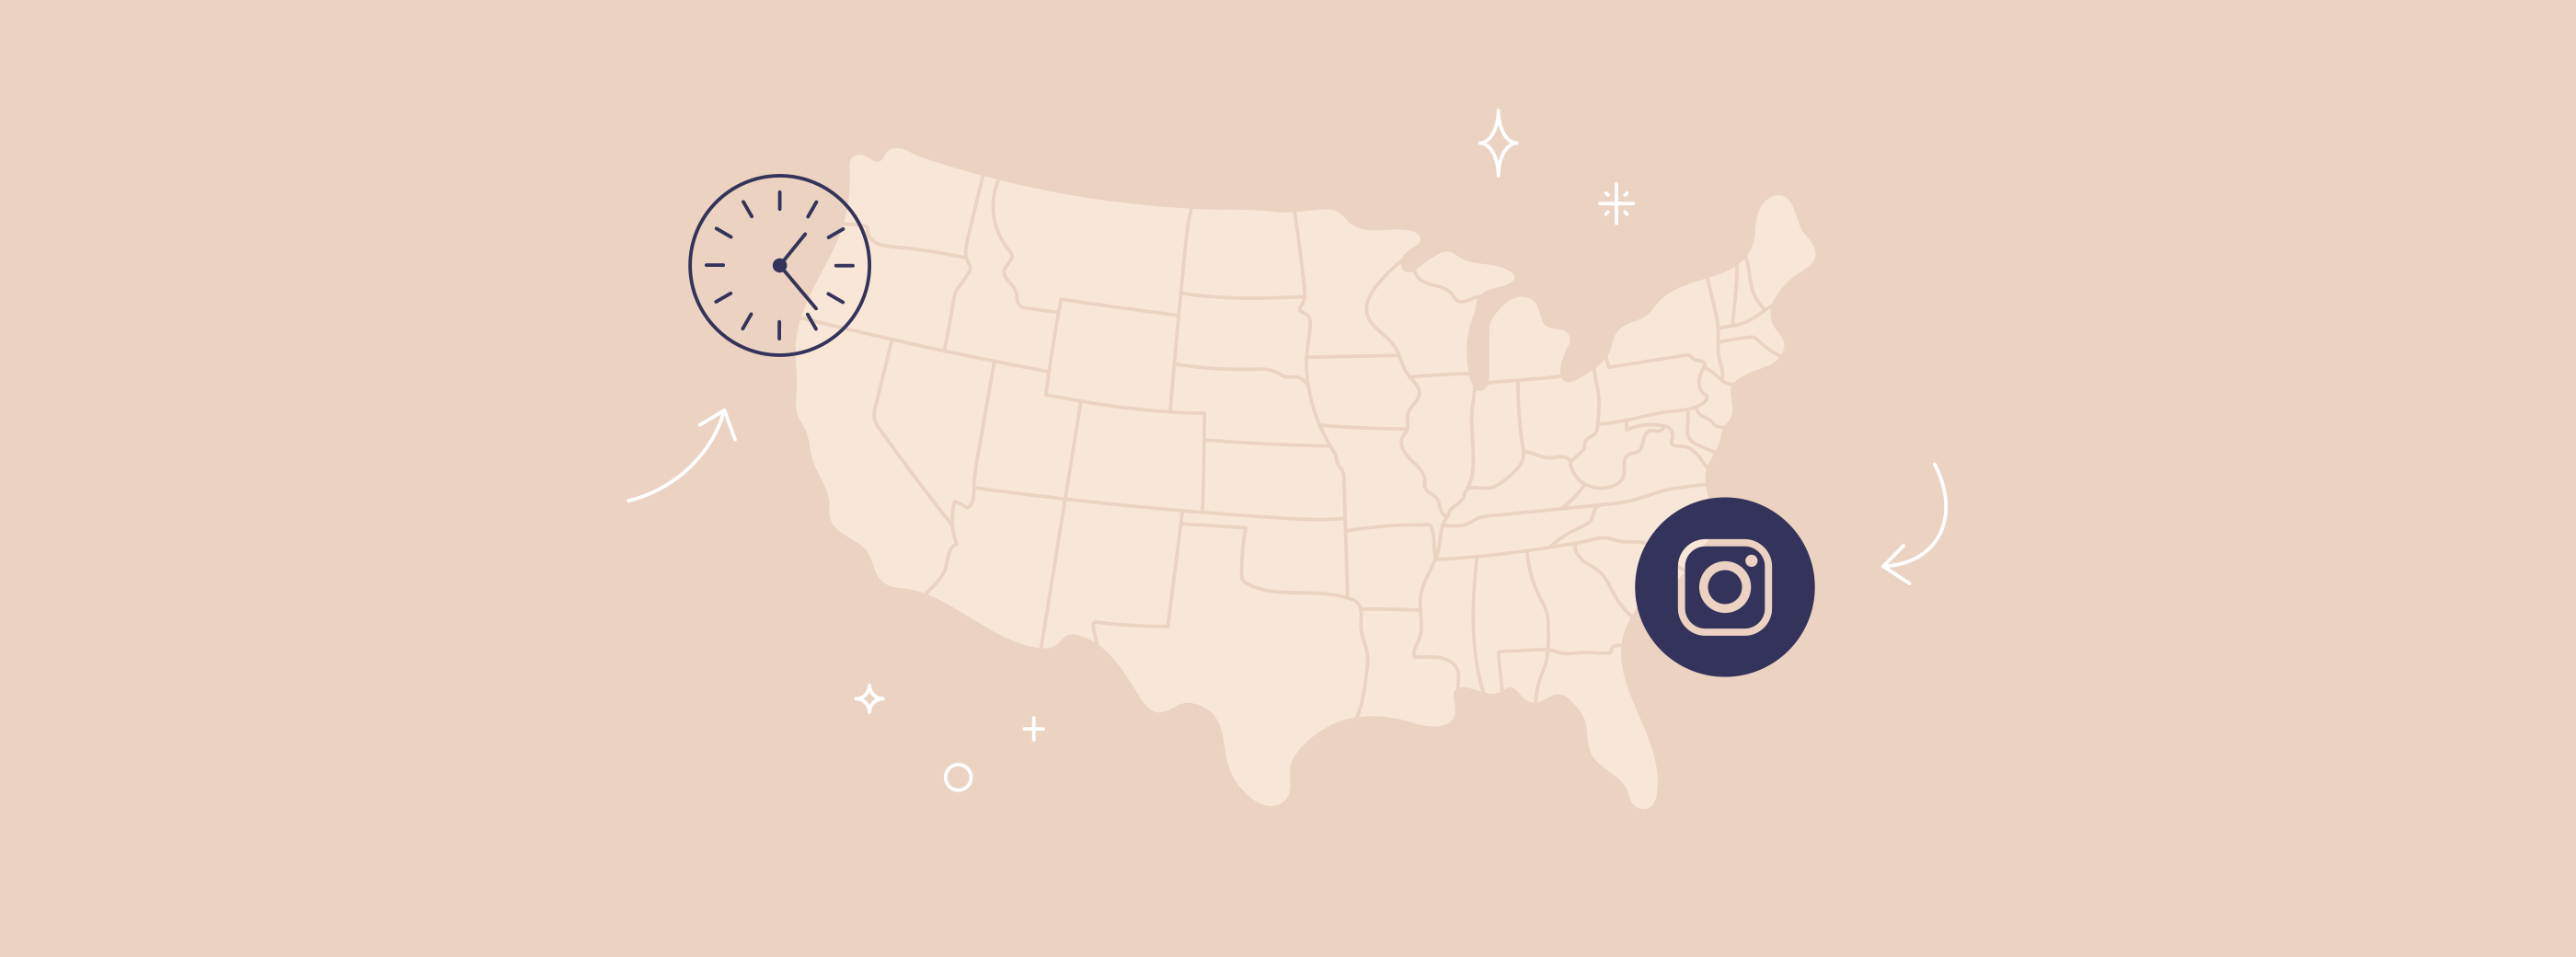 When's the Best Time to Post on Instagram?